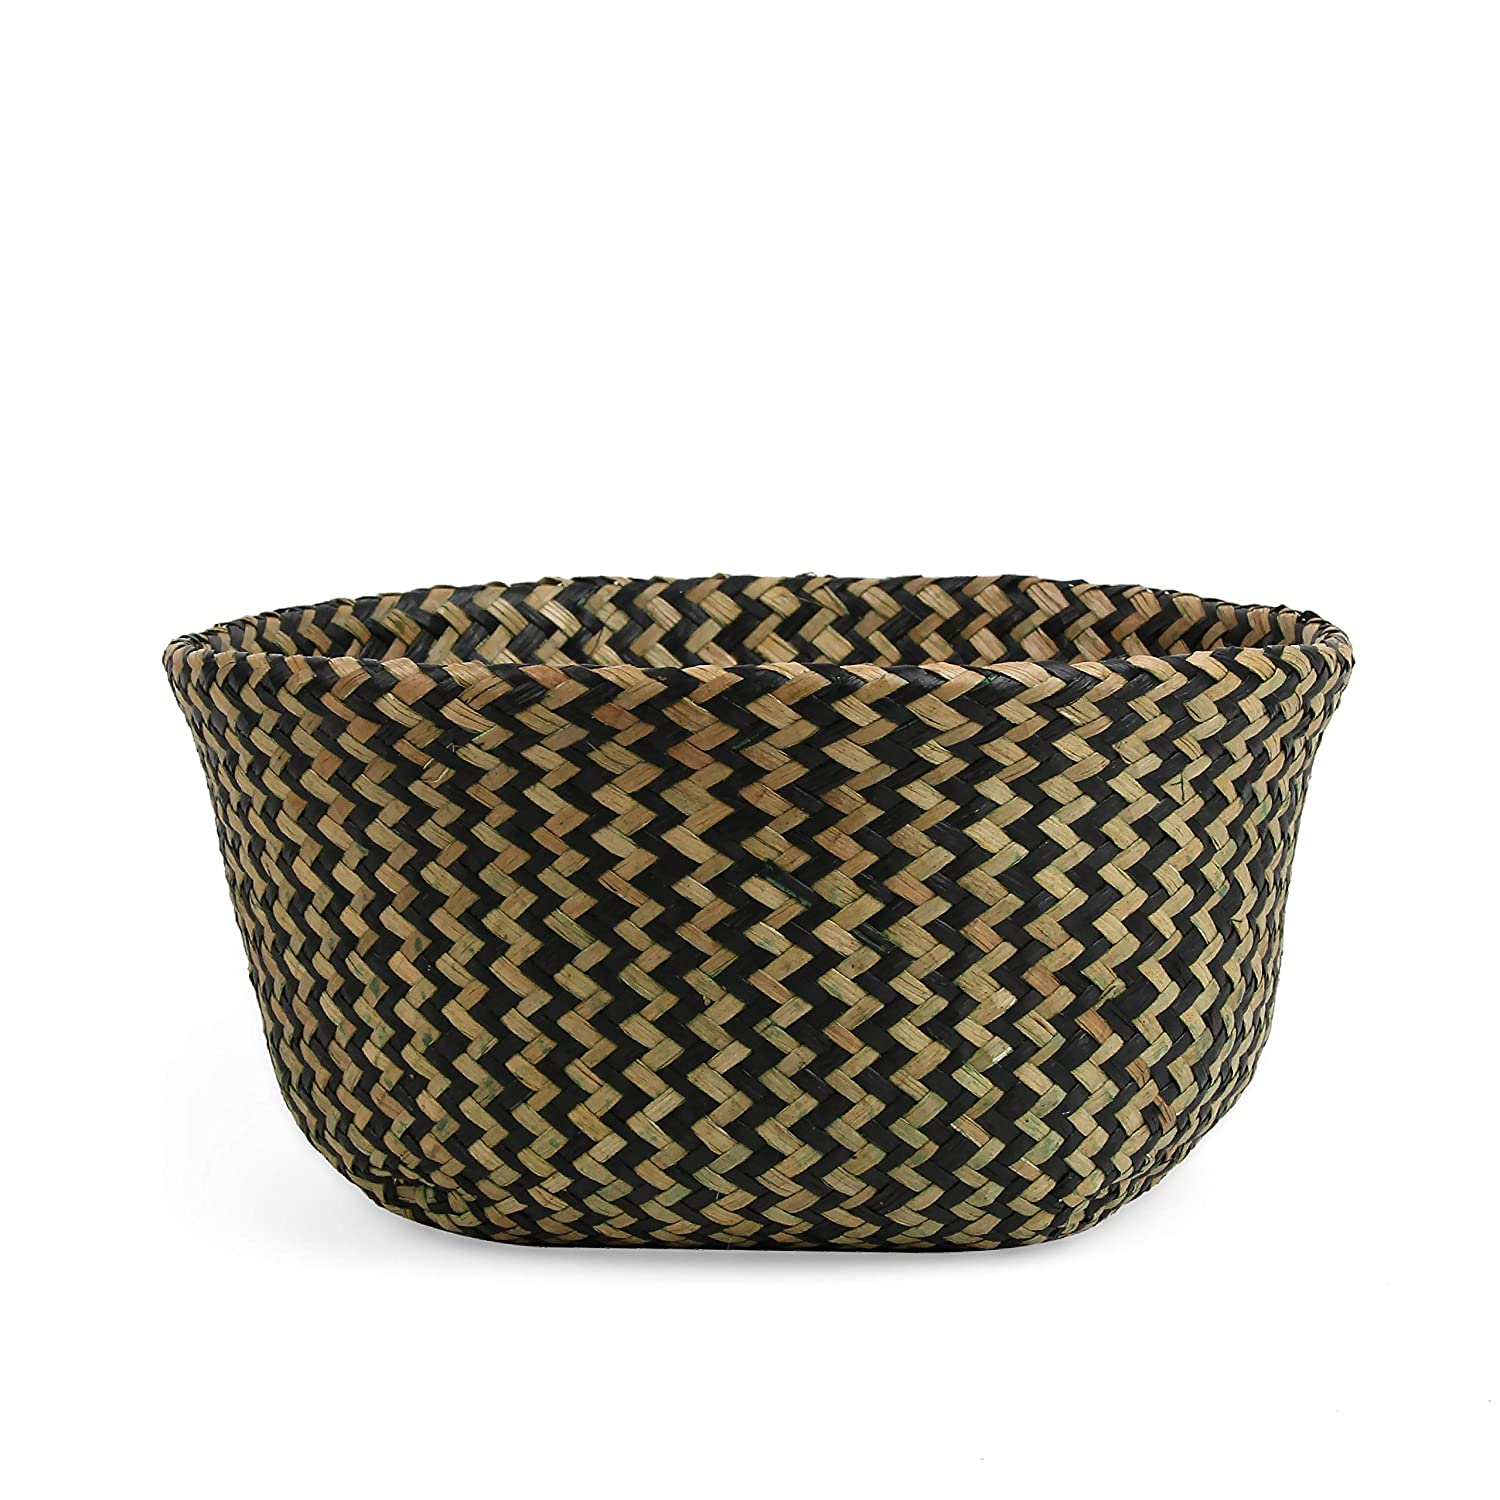 Picnic and Grocery Basket BlueMake Woven Seagrass Belly Basket for Storage Plant Pot Basket and Laundry Small, Original